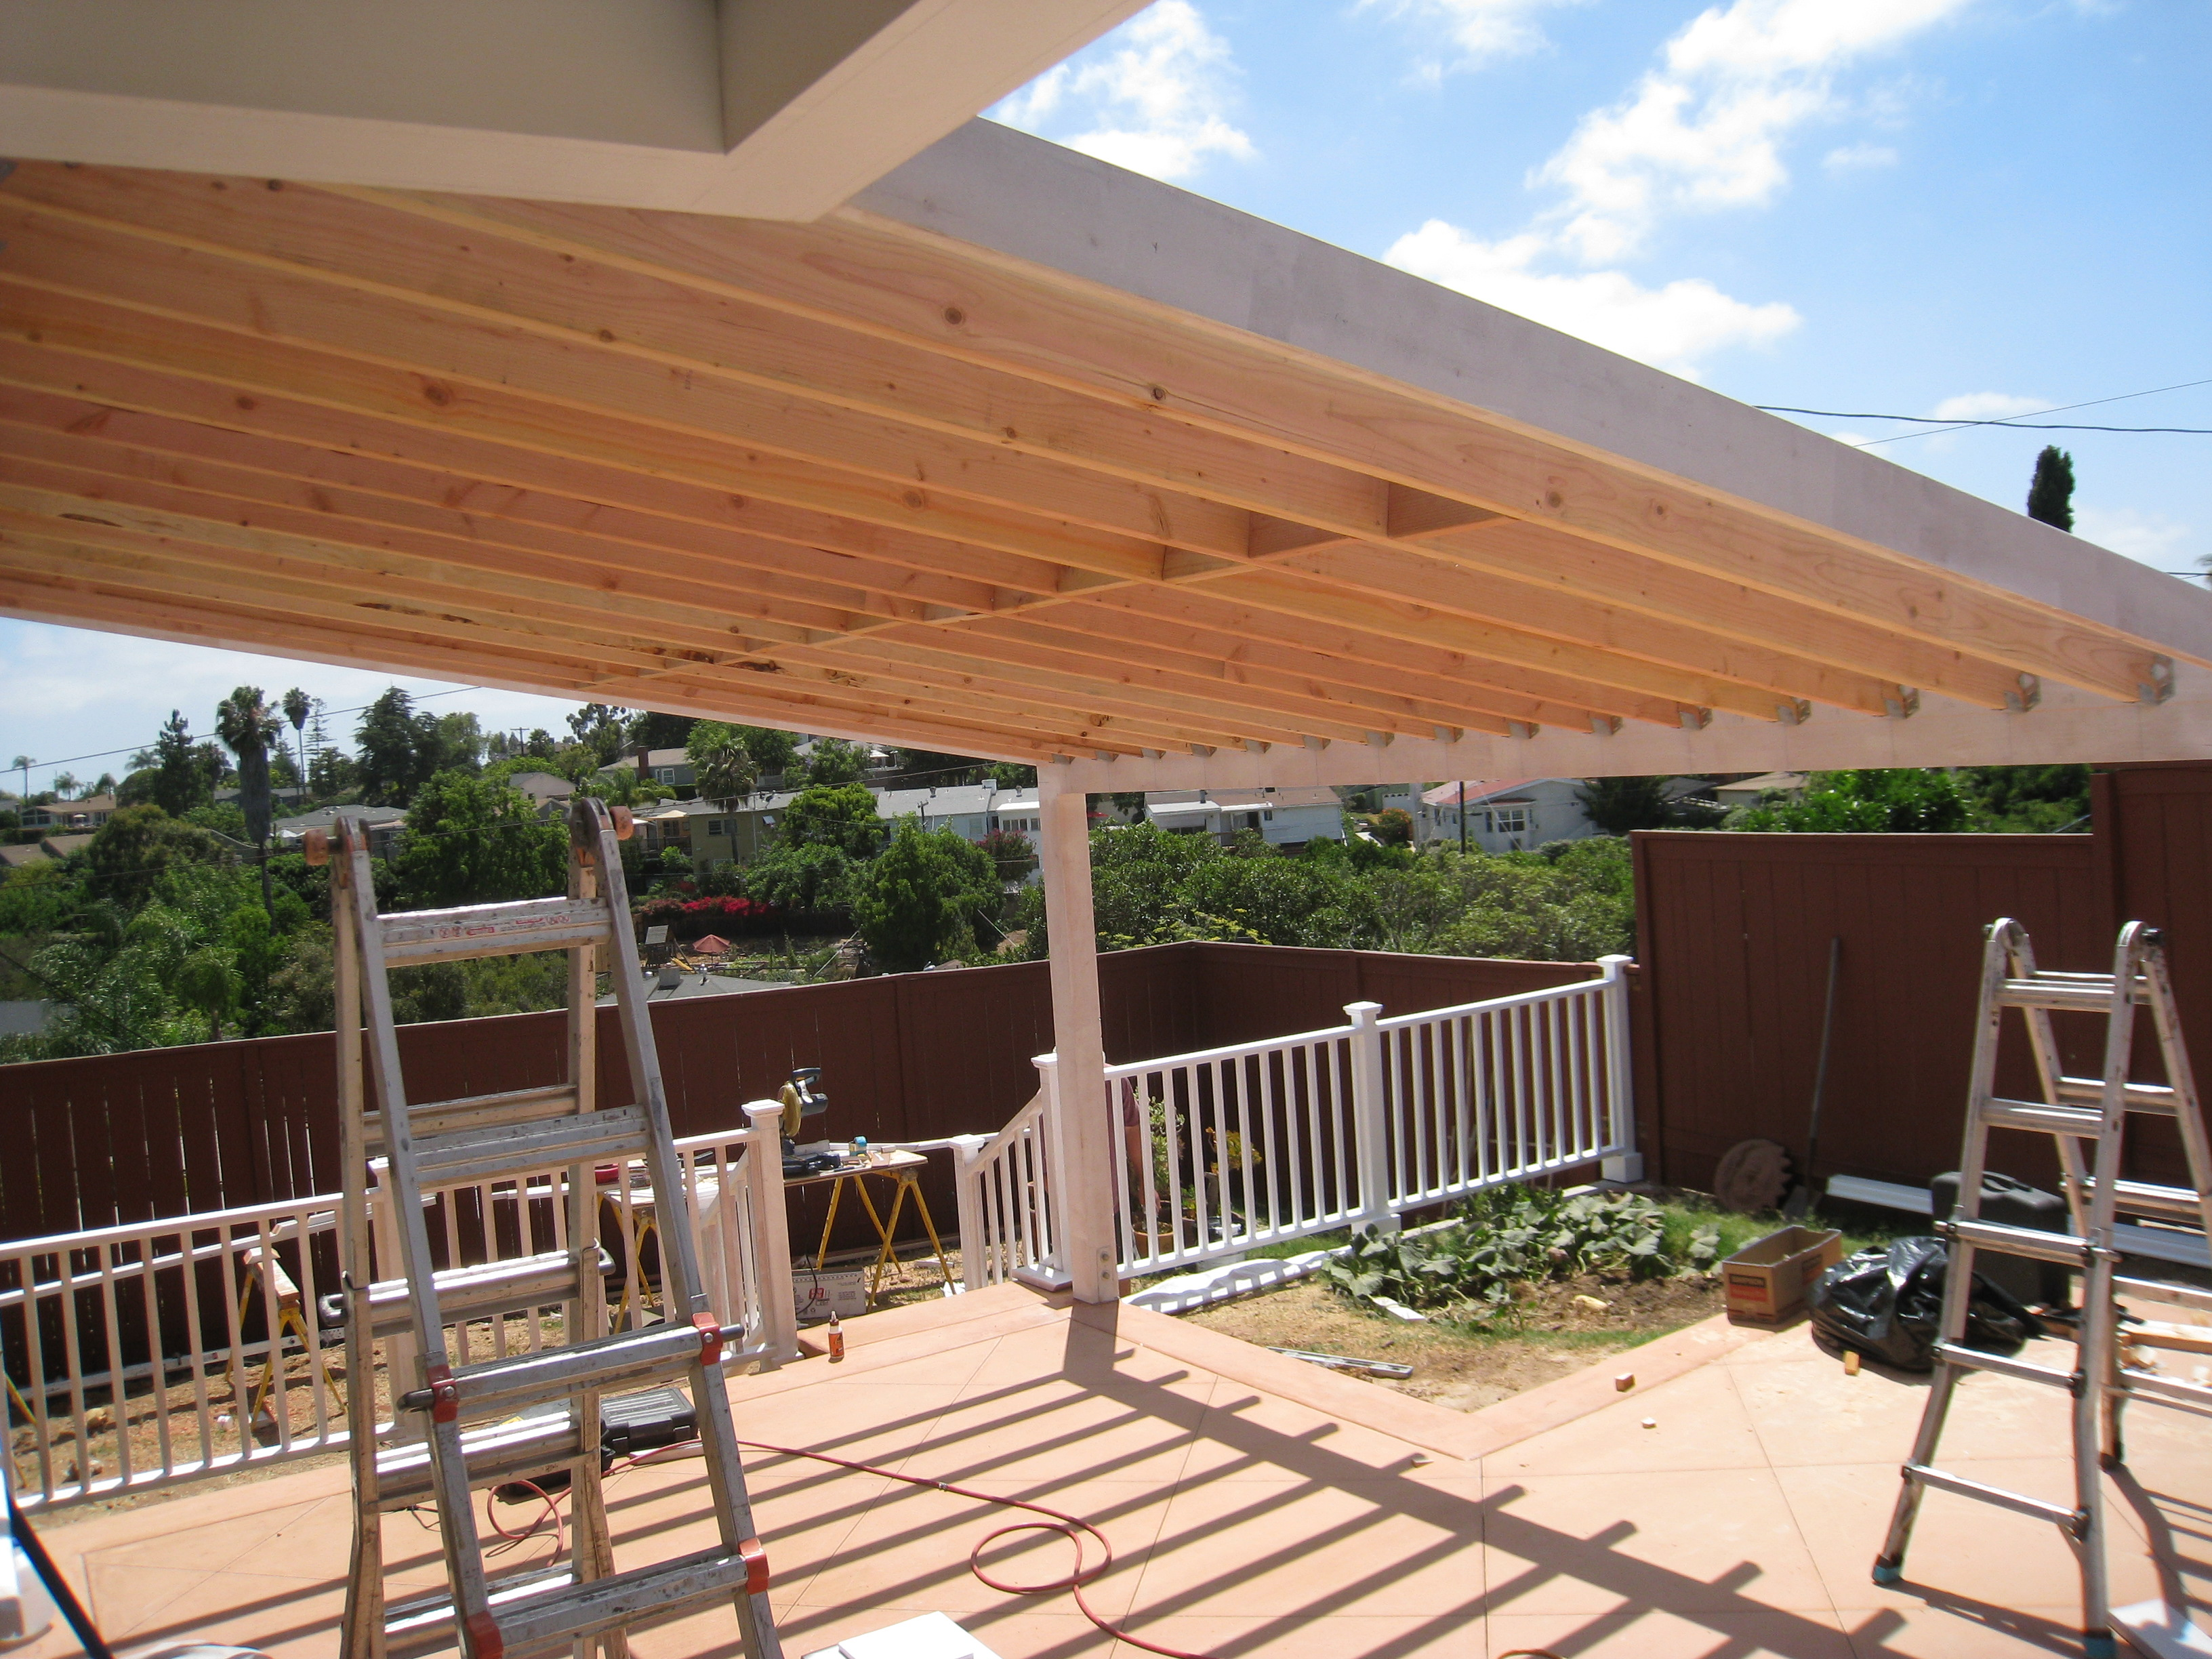 main matchup: wood patio covers versus aluminum patio covers